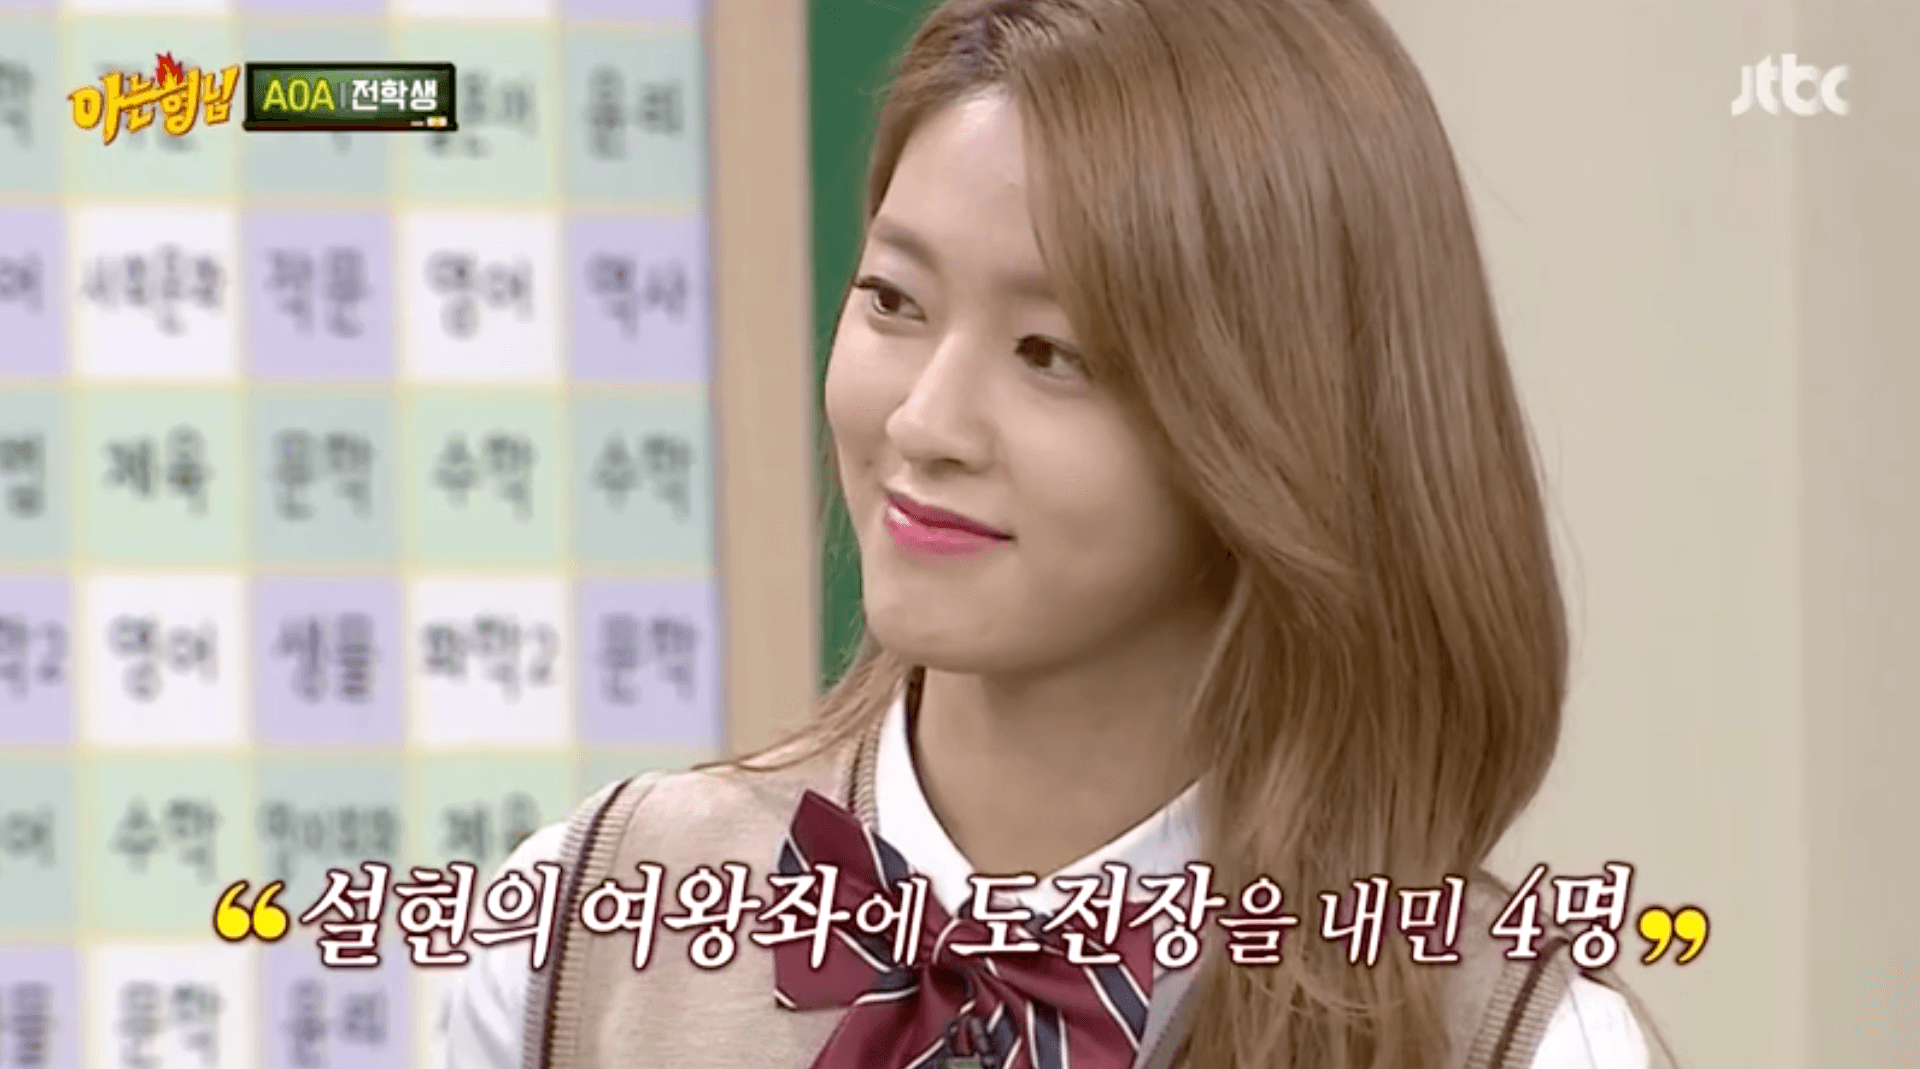 Seolhyun anticipated responses.